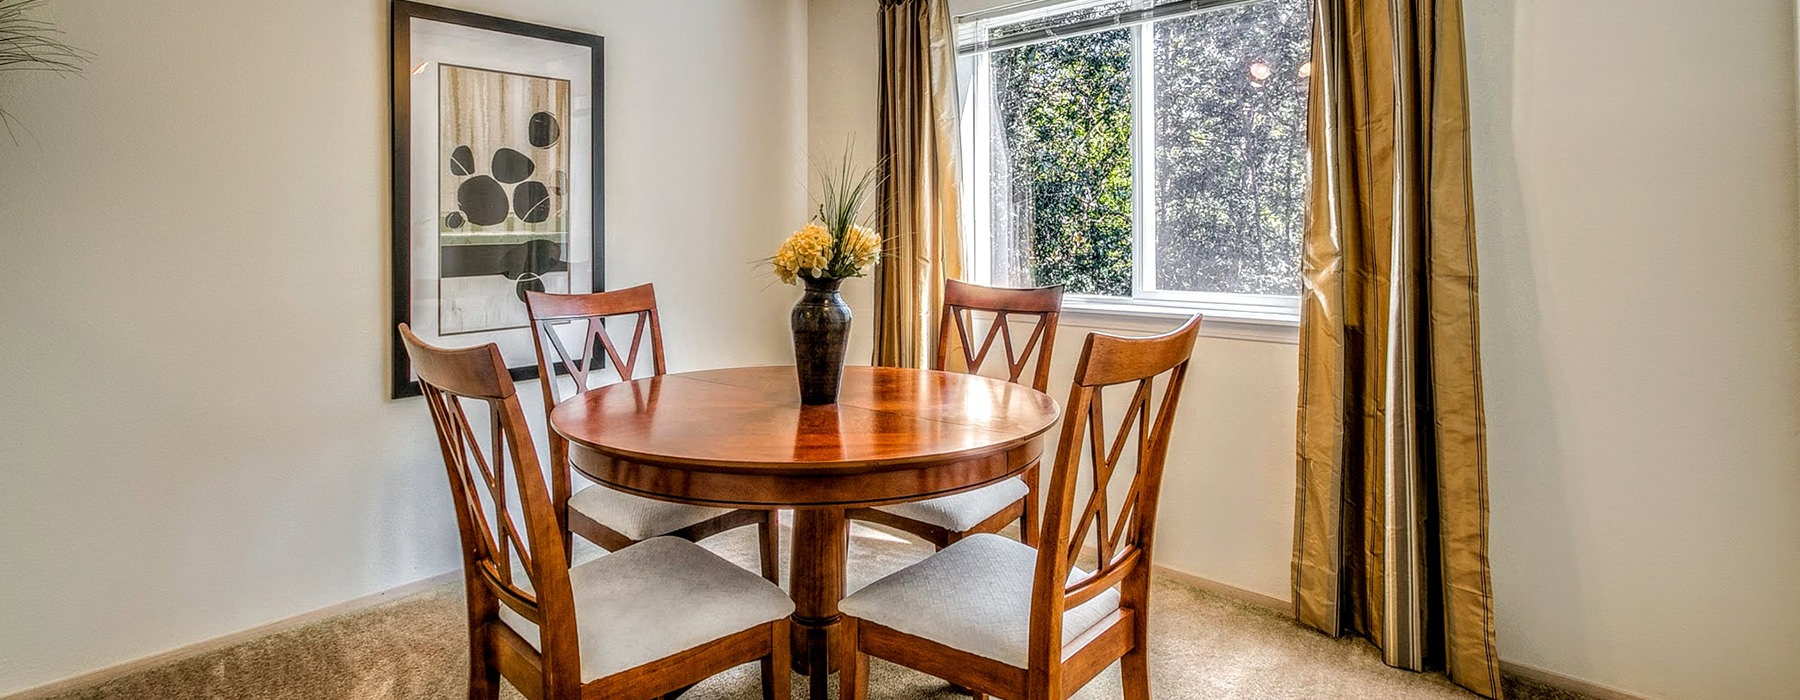 open dining room with large window